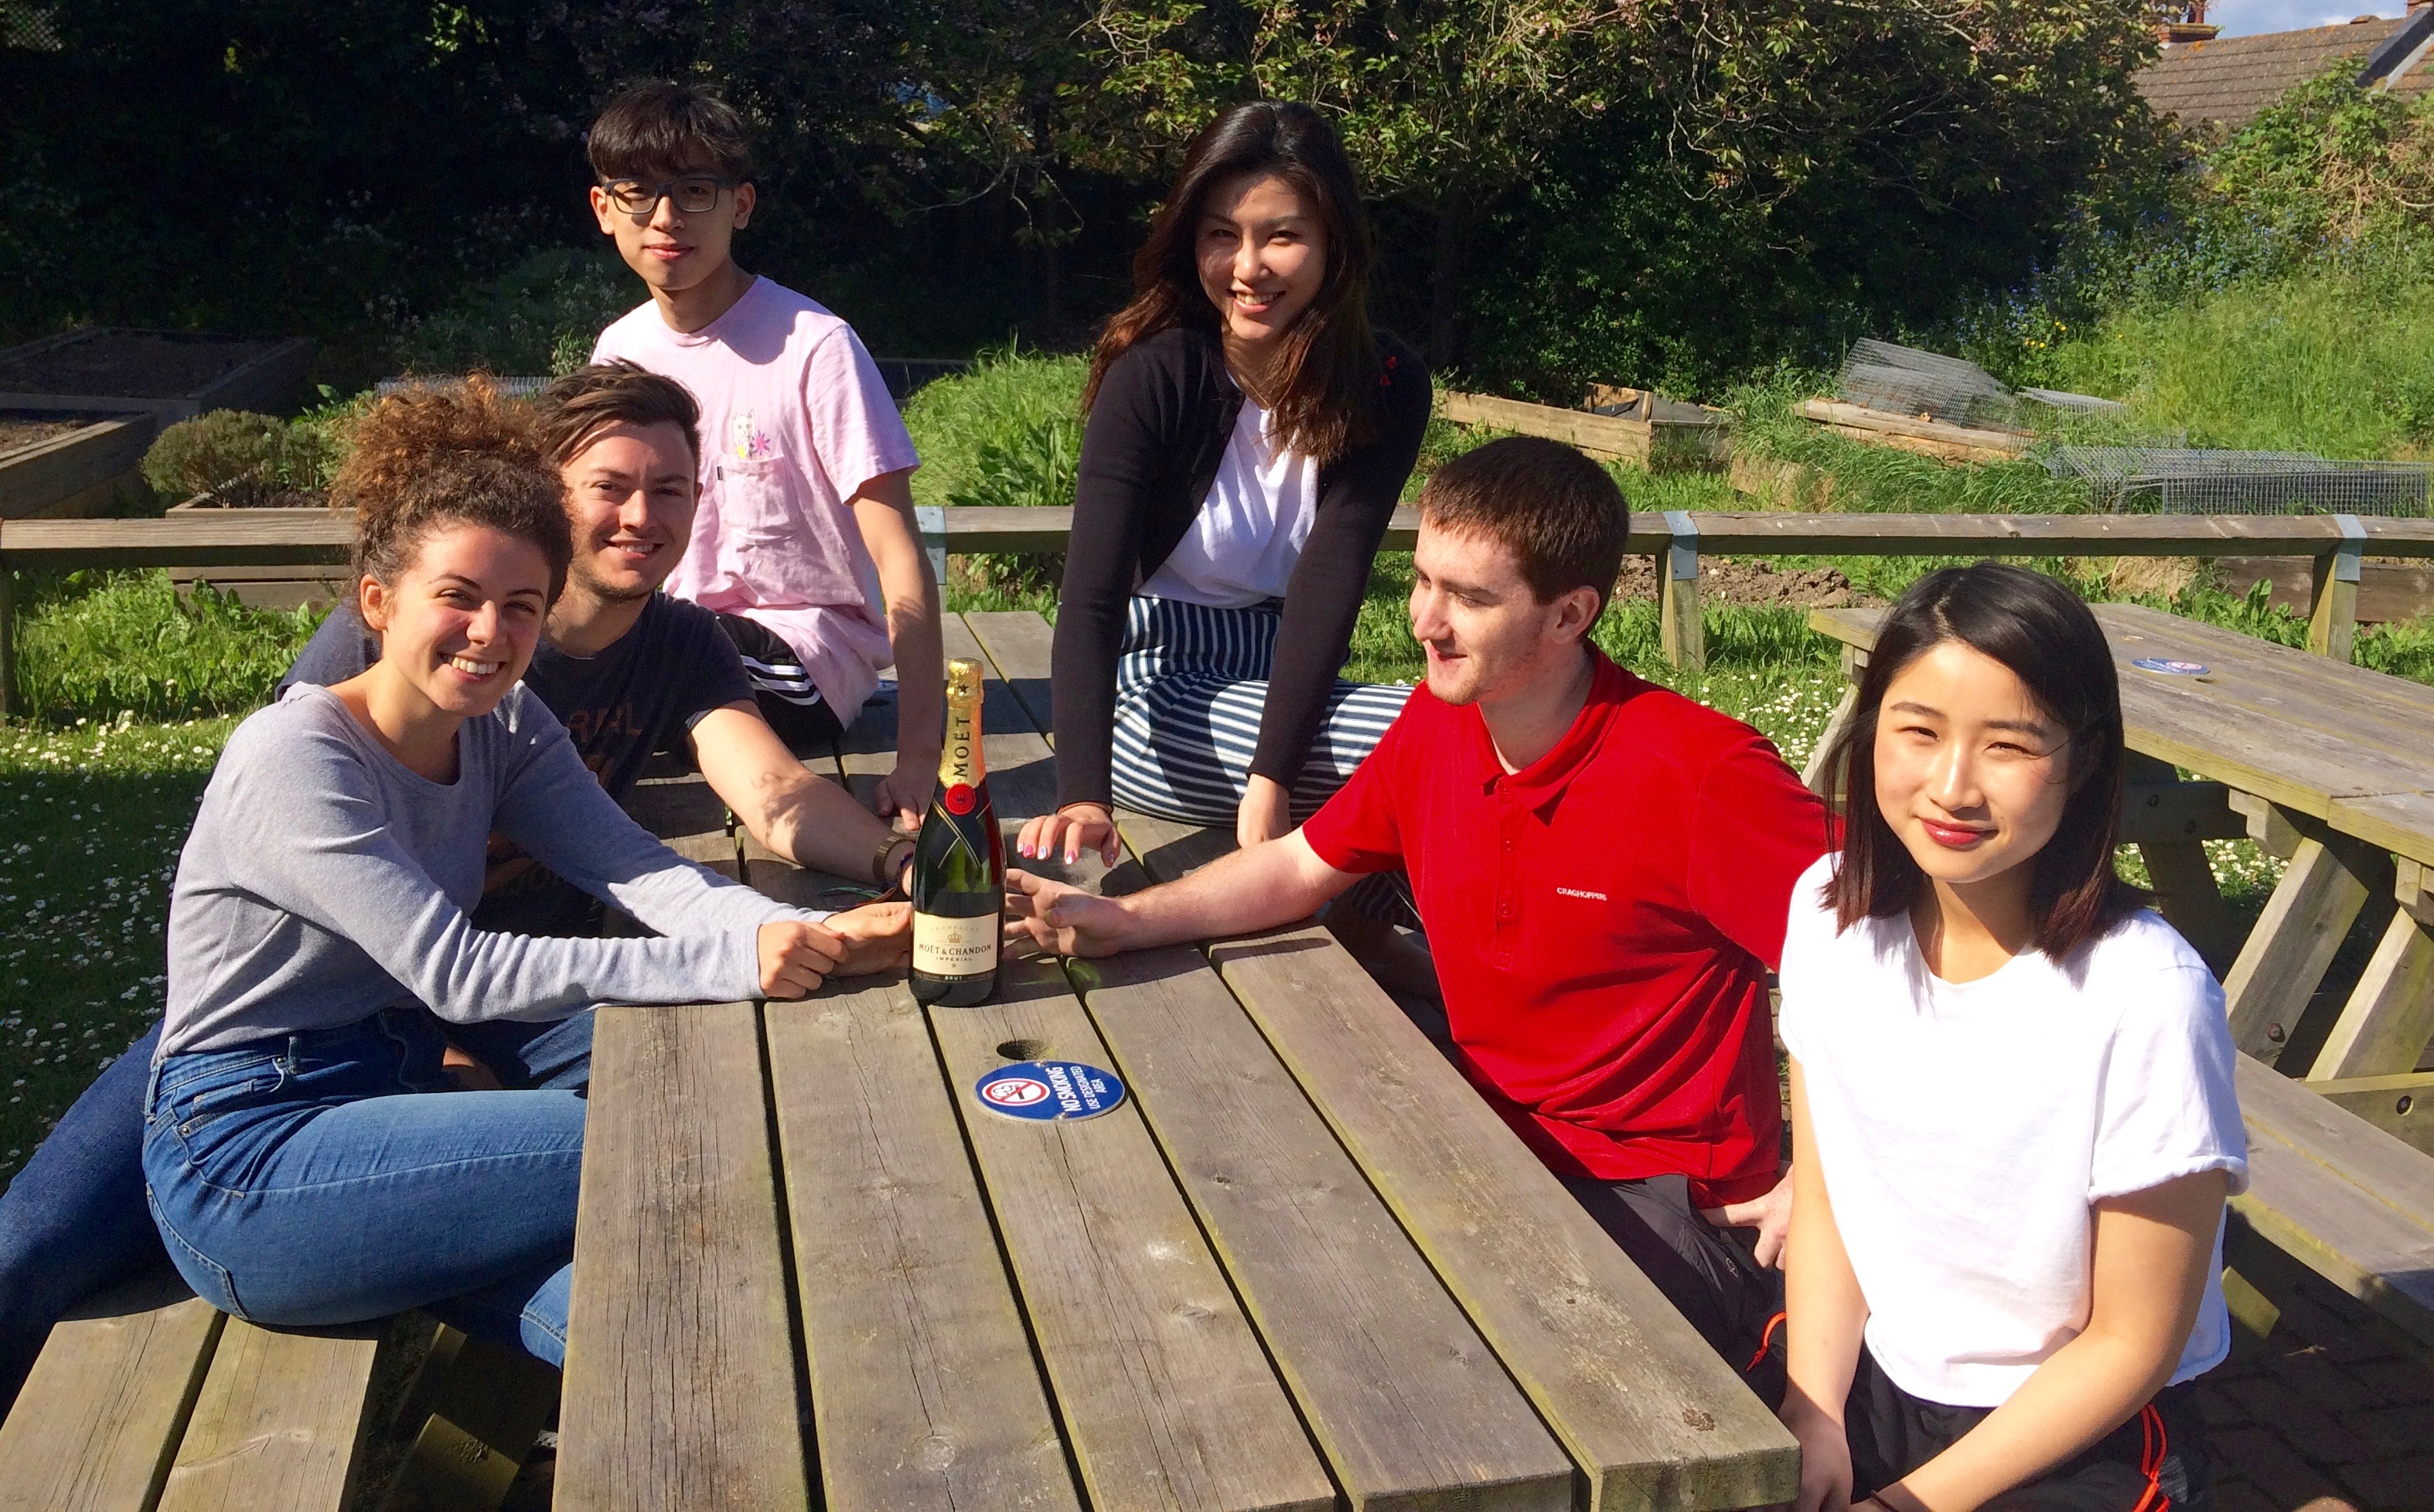 the students celebrating with a bottle of champagne